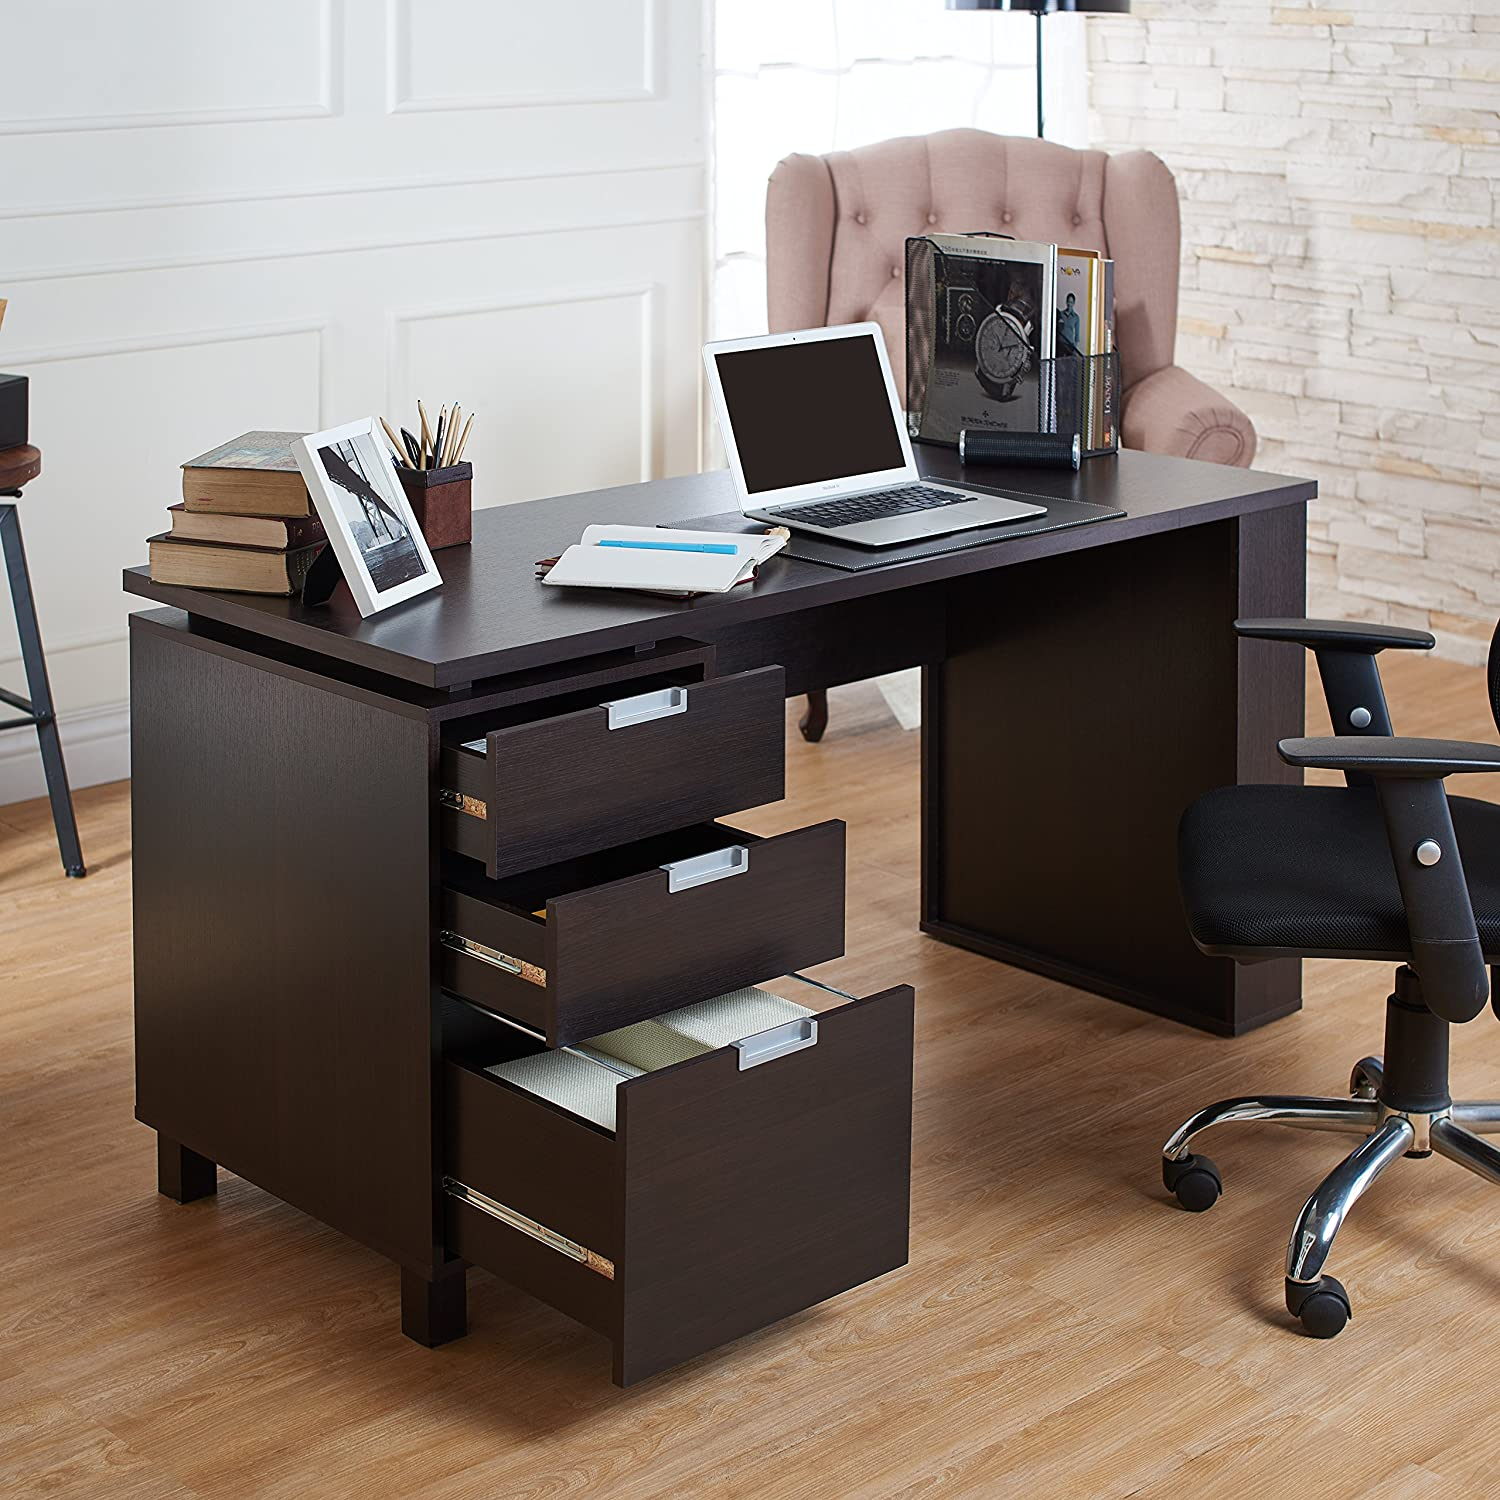 file cabinet diy office wood in enticing your idea decoration white cabinets residence to best desk filing applied